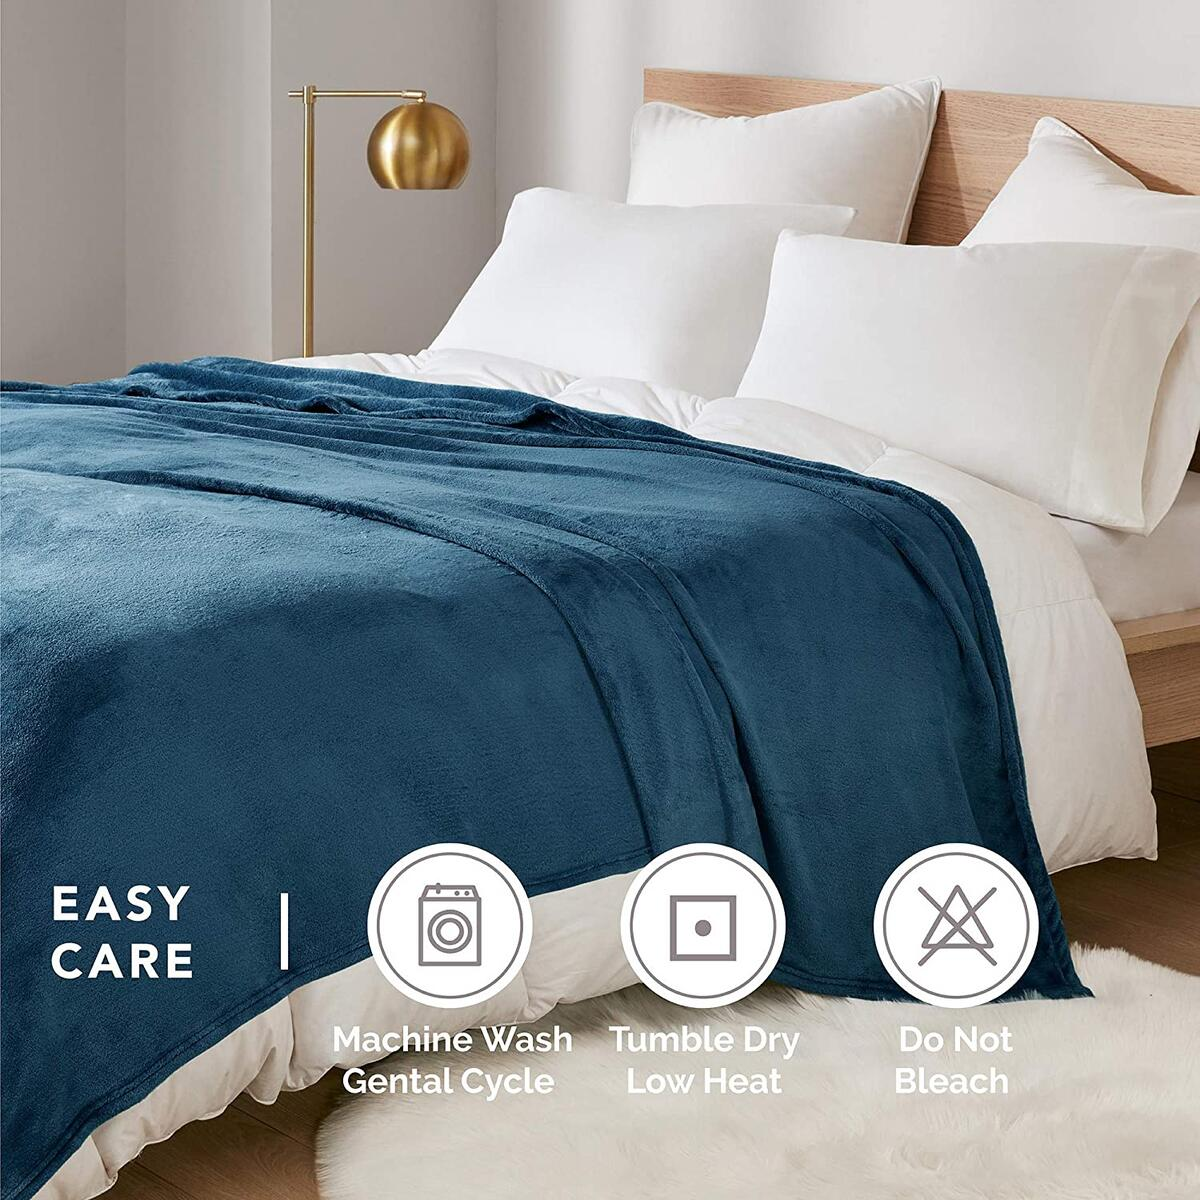 90x90 QUEEN Size Any Color DEGREES OF COMFORT Fleece Queen Blanket for Bed - MicroVelour Velvet Plush | Silky Soft & Lightweight | Use on Couch, Bed or Camping | 4 Sizes, 10 Colors Available Throw Blanket, 90x90 QUEEN Size Any Color